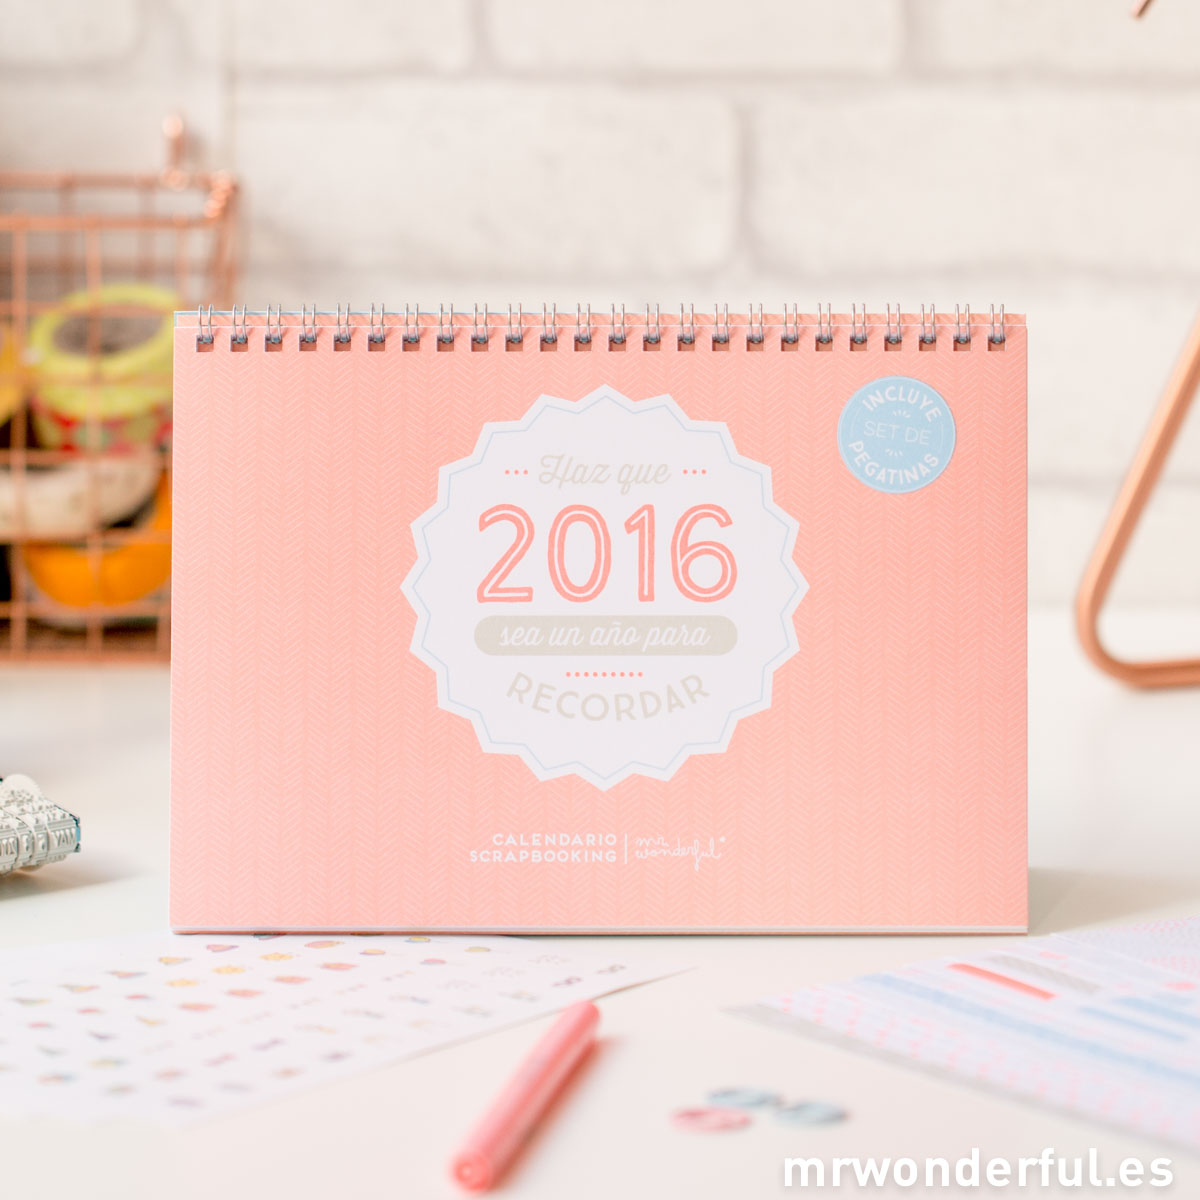 mrwonderful_WOA02928_8436547193639_Calendario-scrap-2015-2016-16